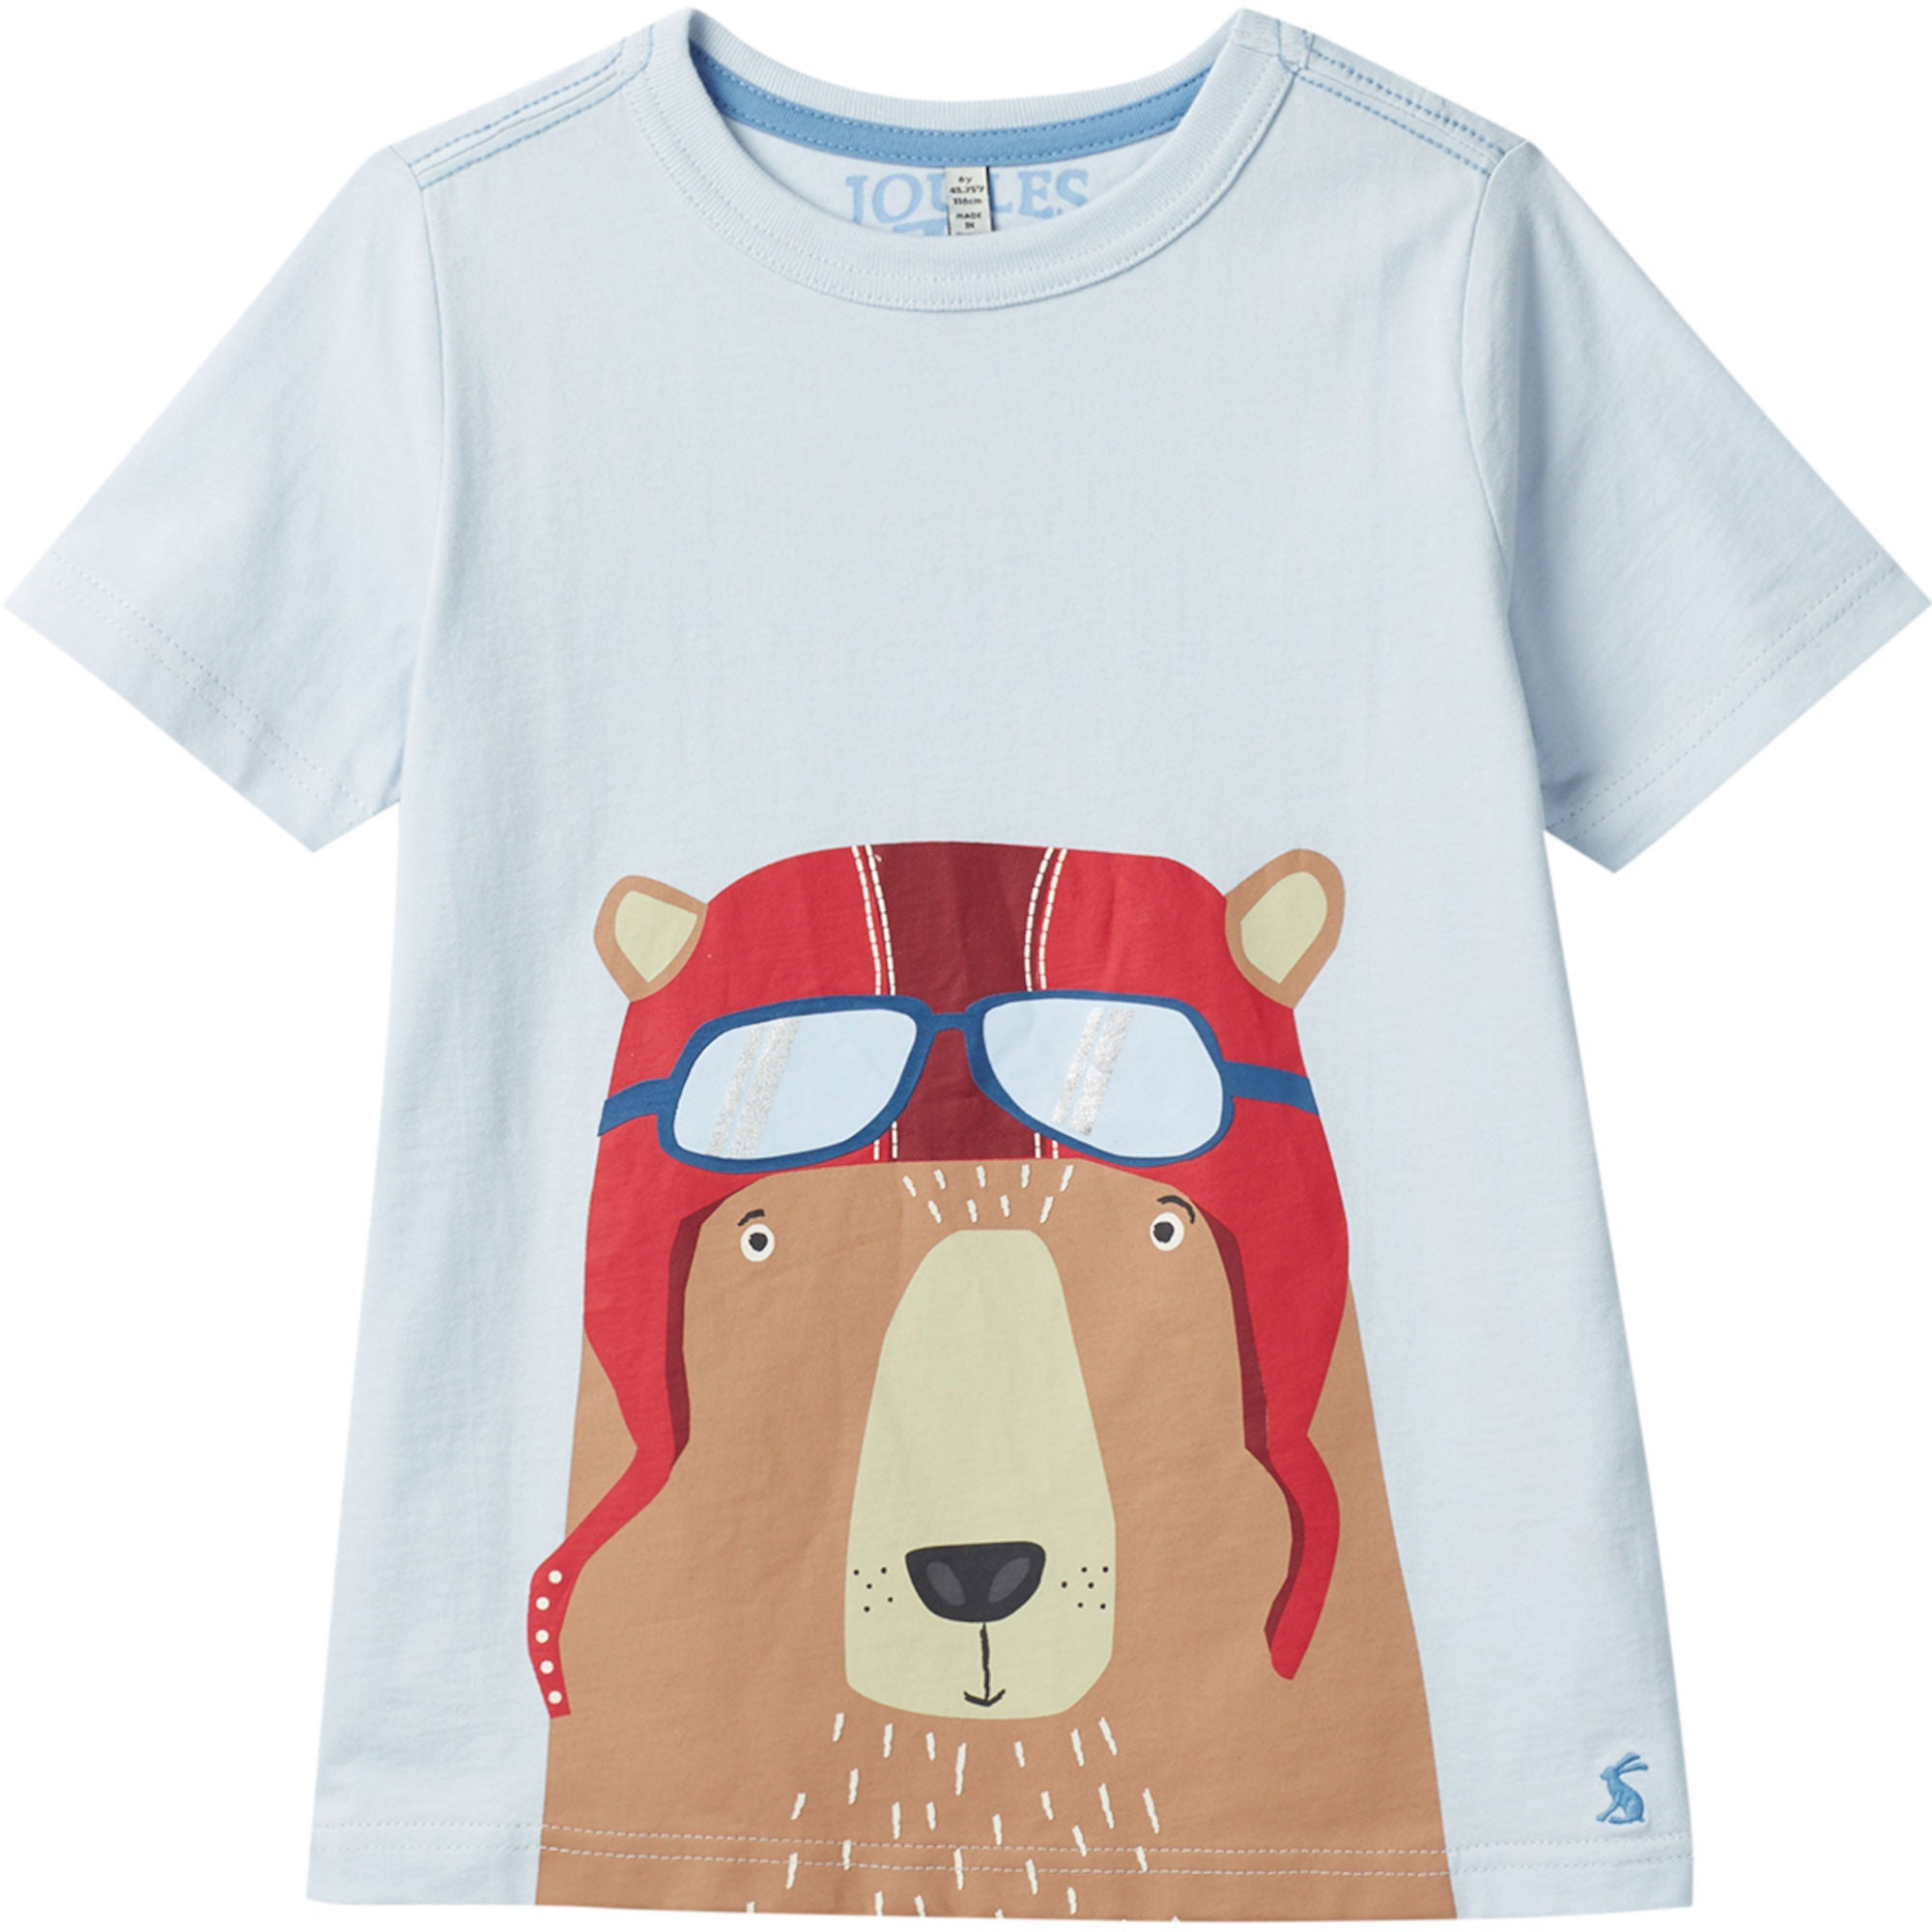 new arrival 48ed4 e050a T-Shirts & Tops von Tom Joule   Jollyroom